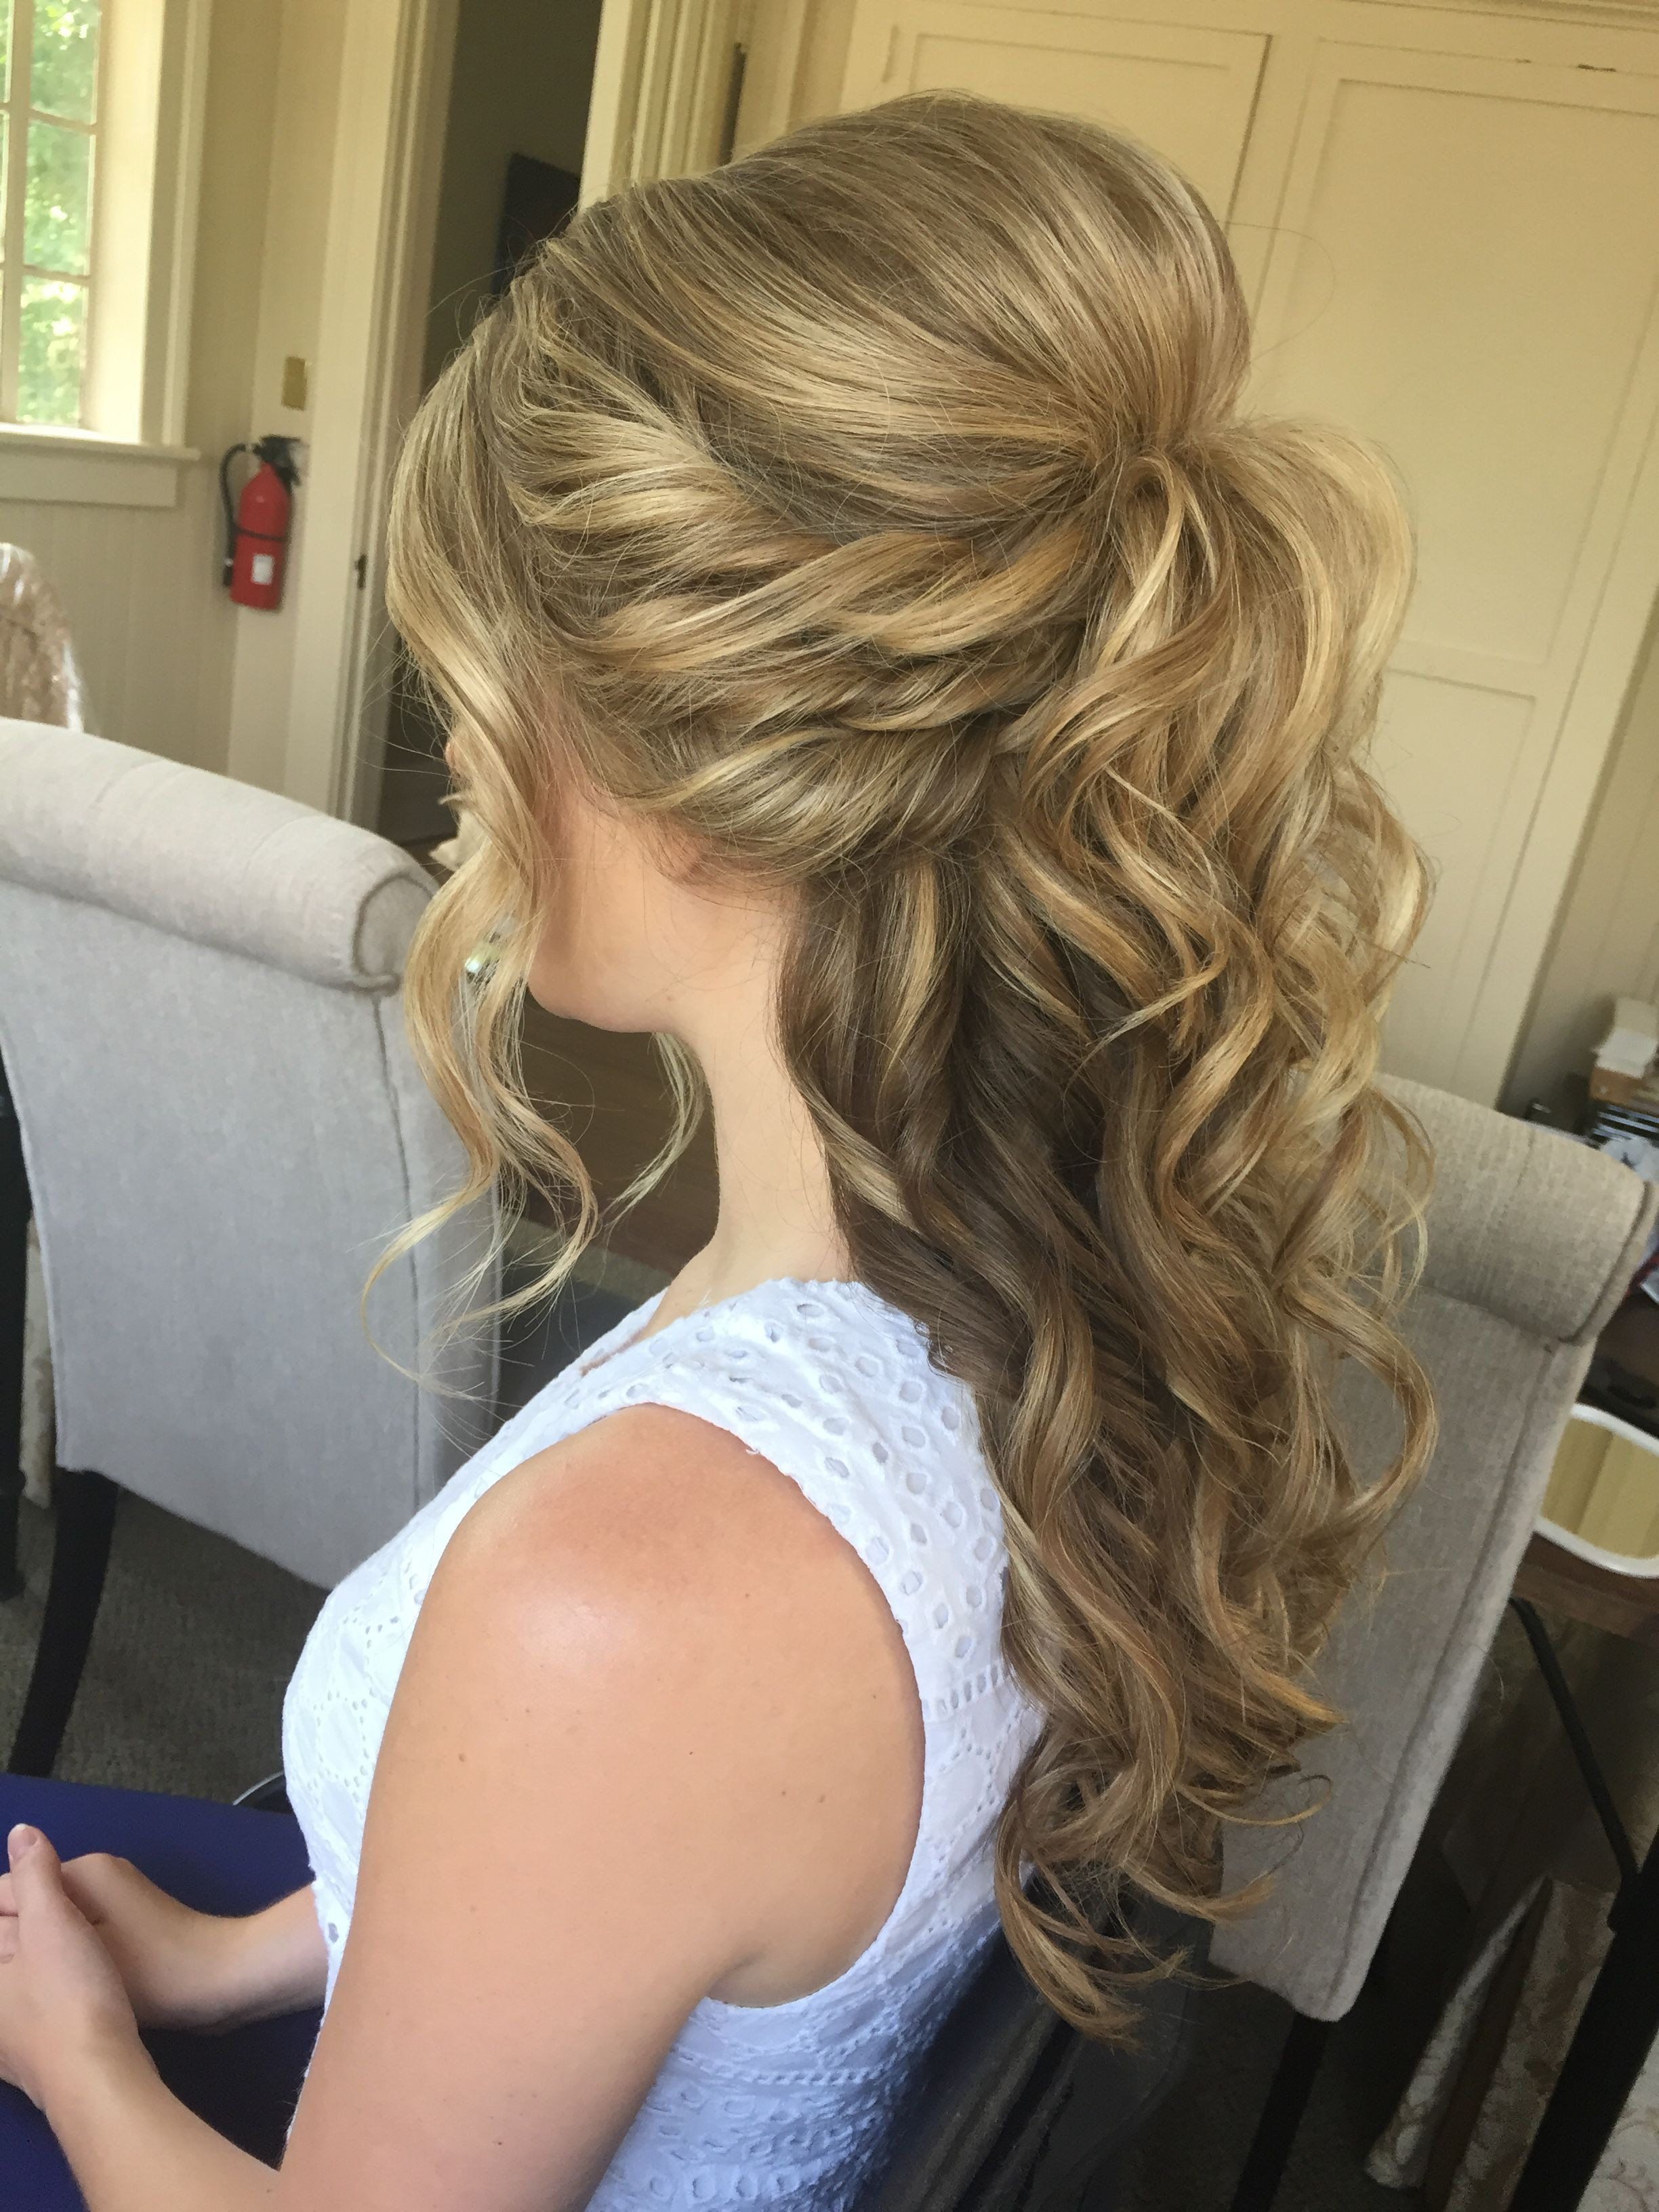 Fashion : Hairstyle Half Up Half Down Curly Enchanting Prom Throughout Trendy Elegant Curled Prom Hairstyles (View 8 of 20)